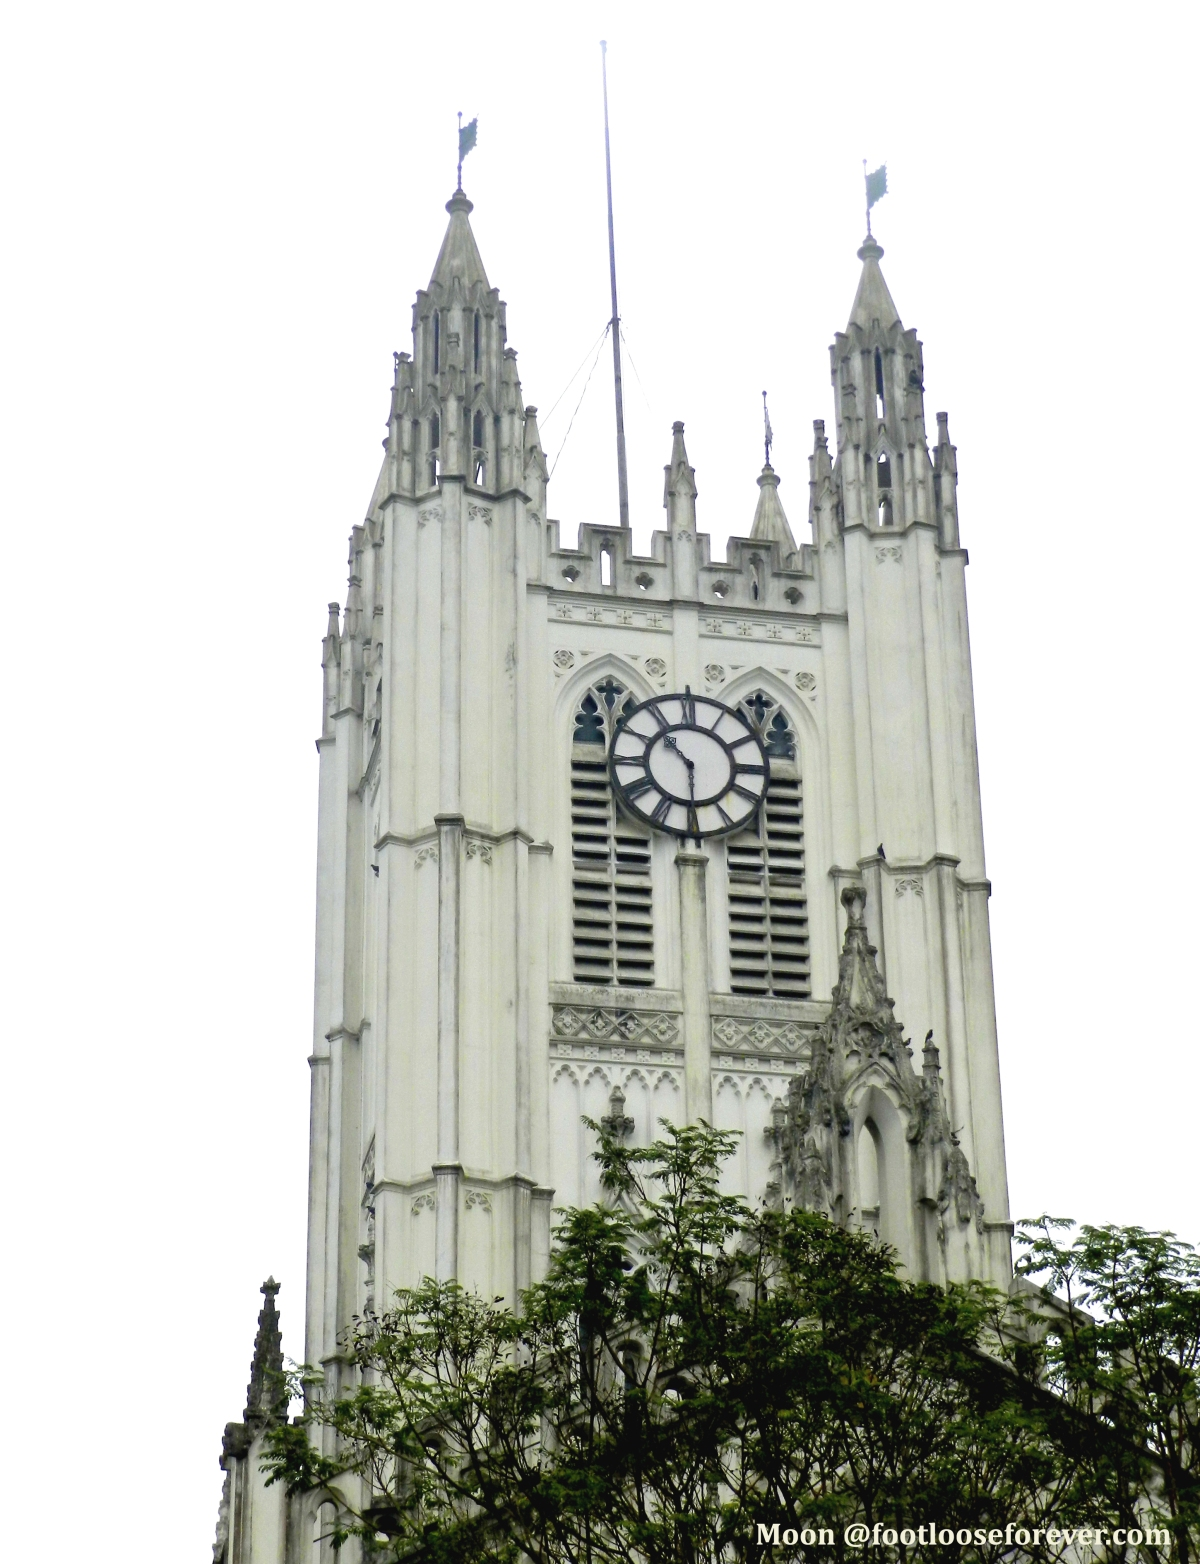 St paul's cathedral, kolkata, steeple, church, kolkata sightseeing